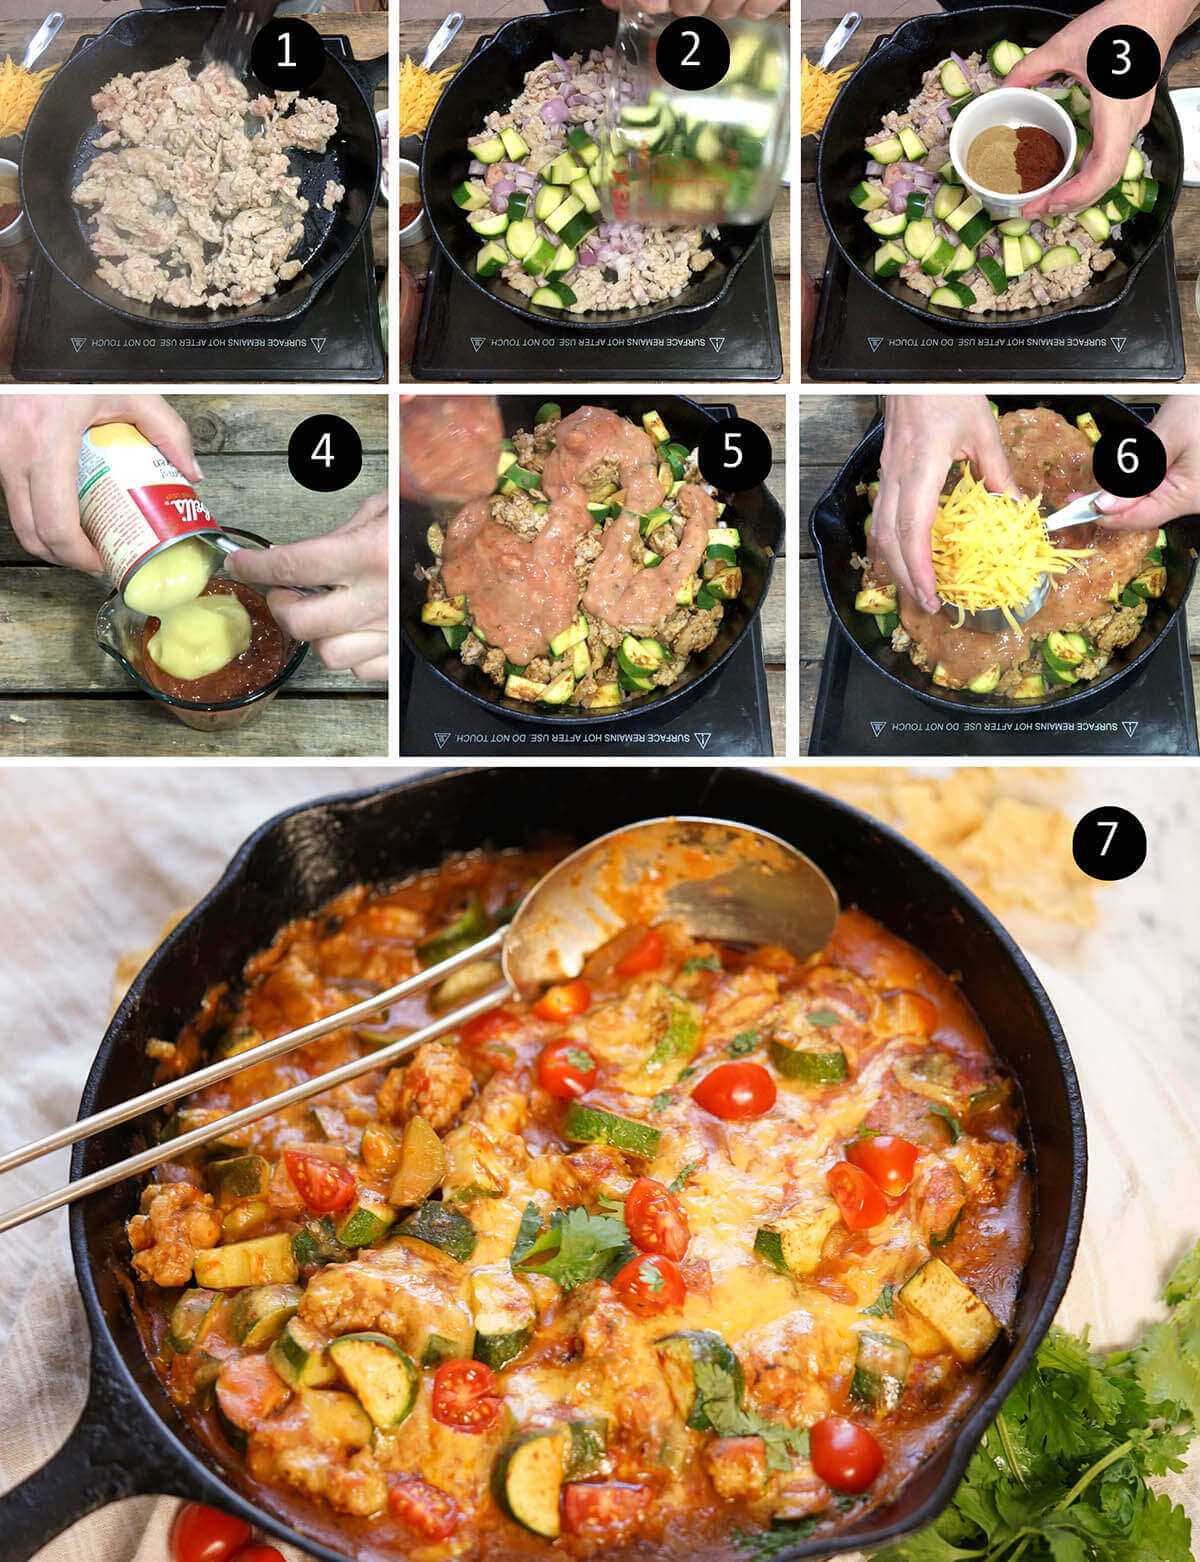 step by step direction to make casserole dish.